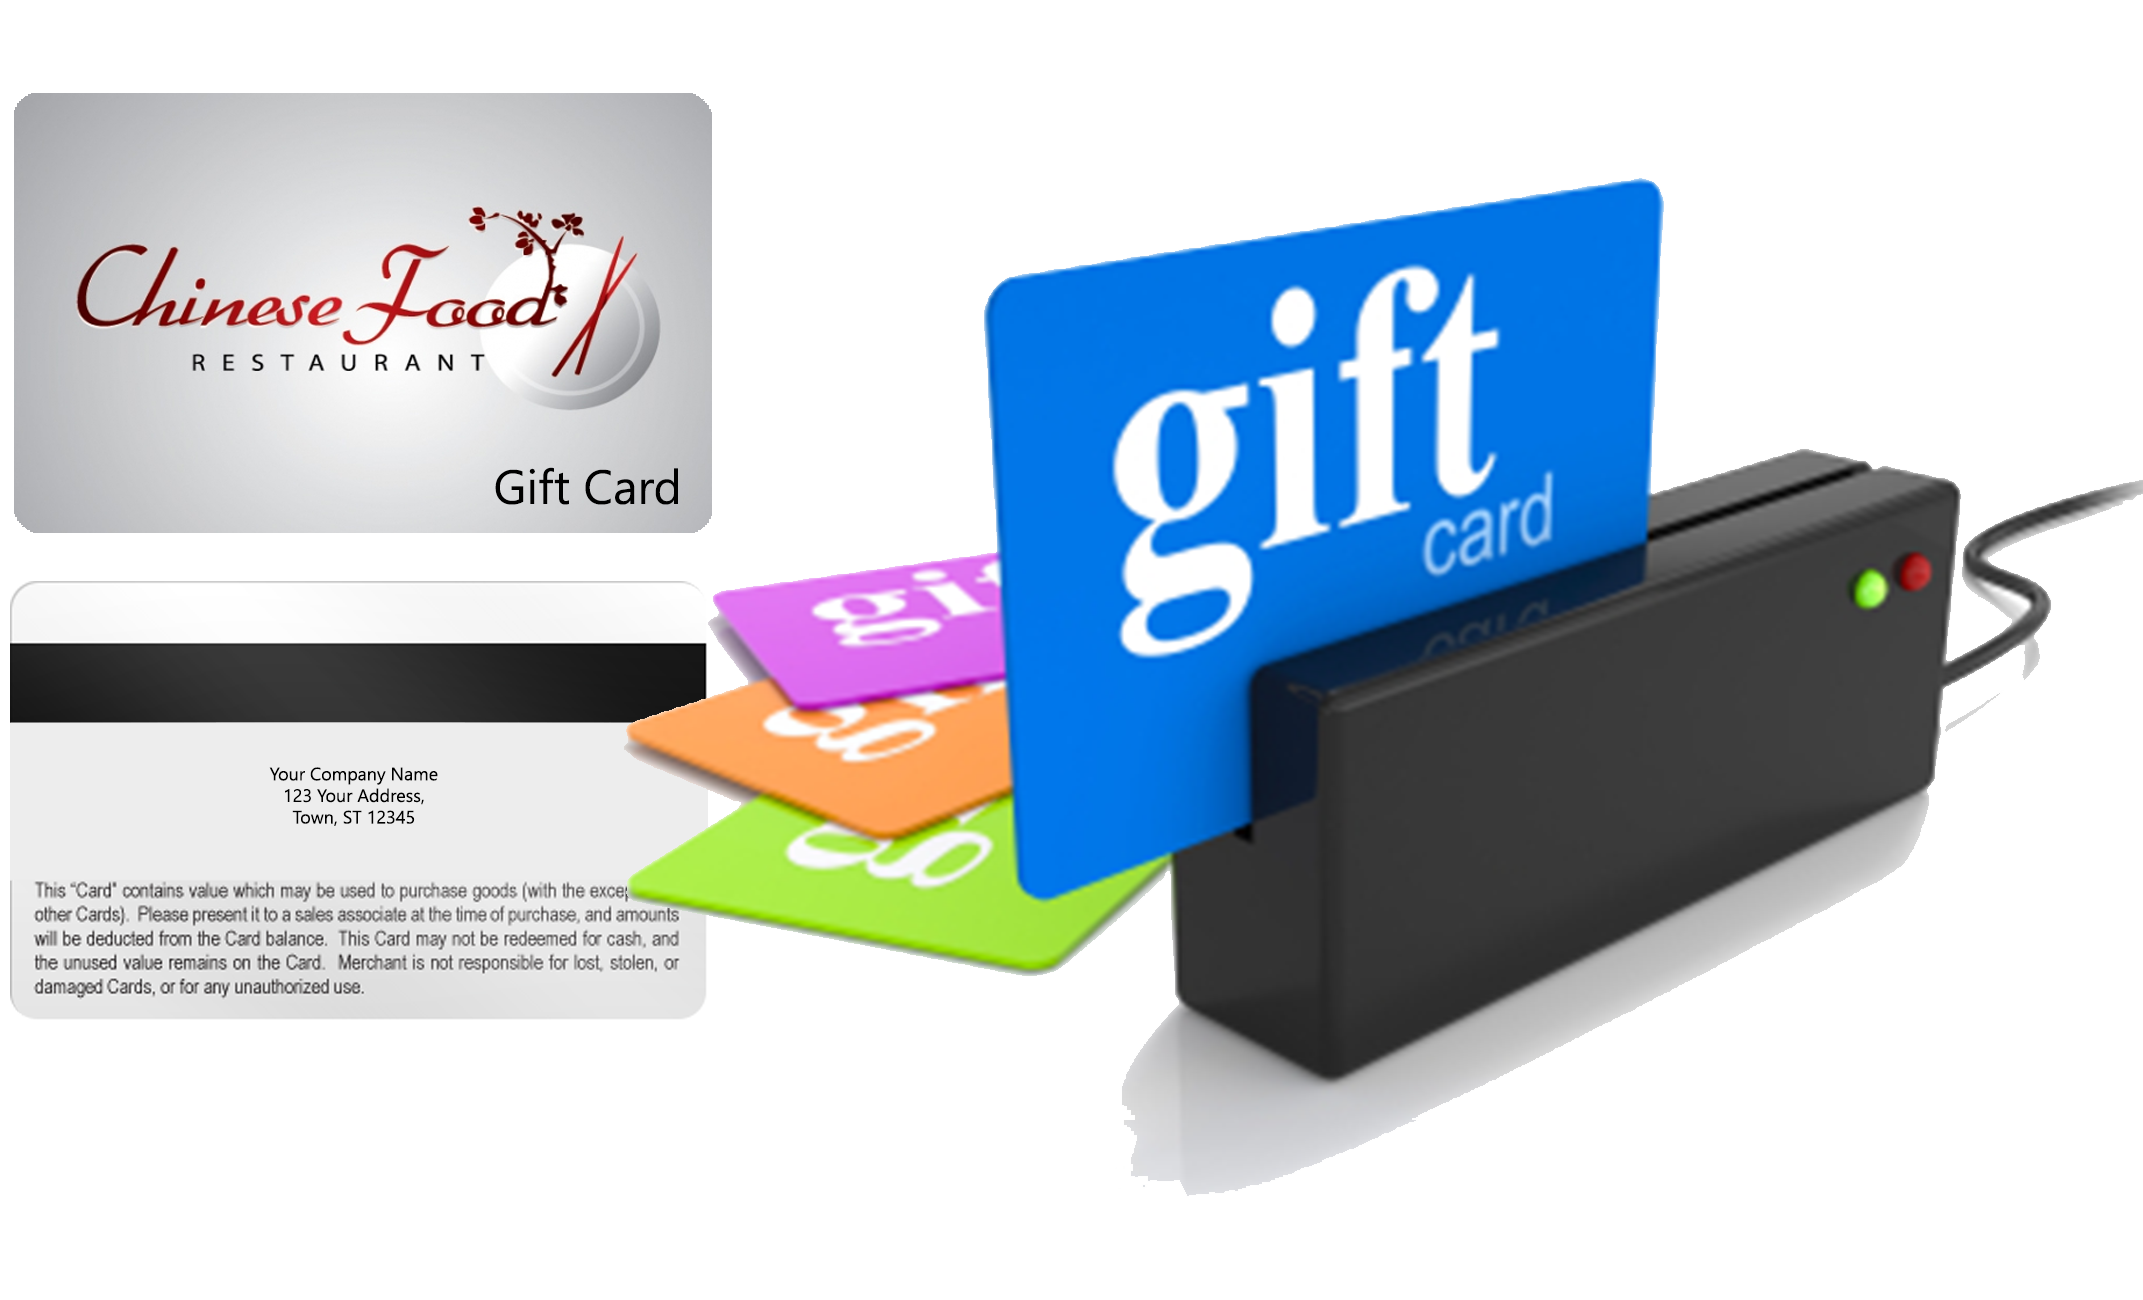 Custom gift cards for my business images free business cards plastic gift cards for business image collections free business plastic gift powerup pos merchant services upgrade magicingreecefo Images